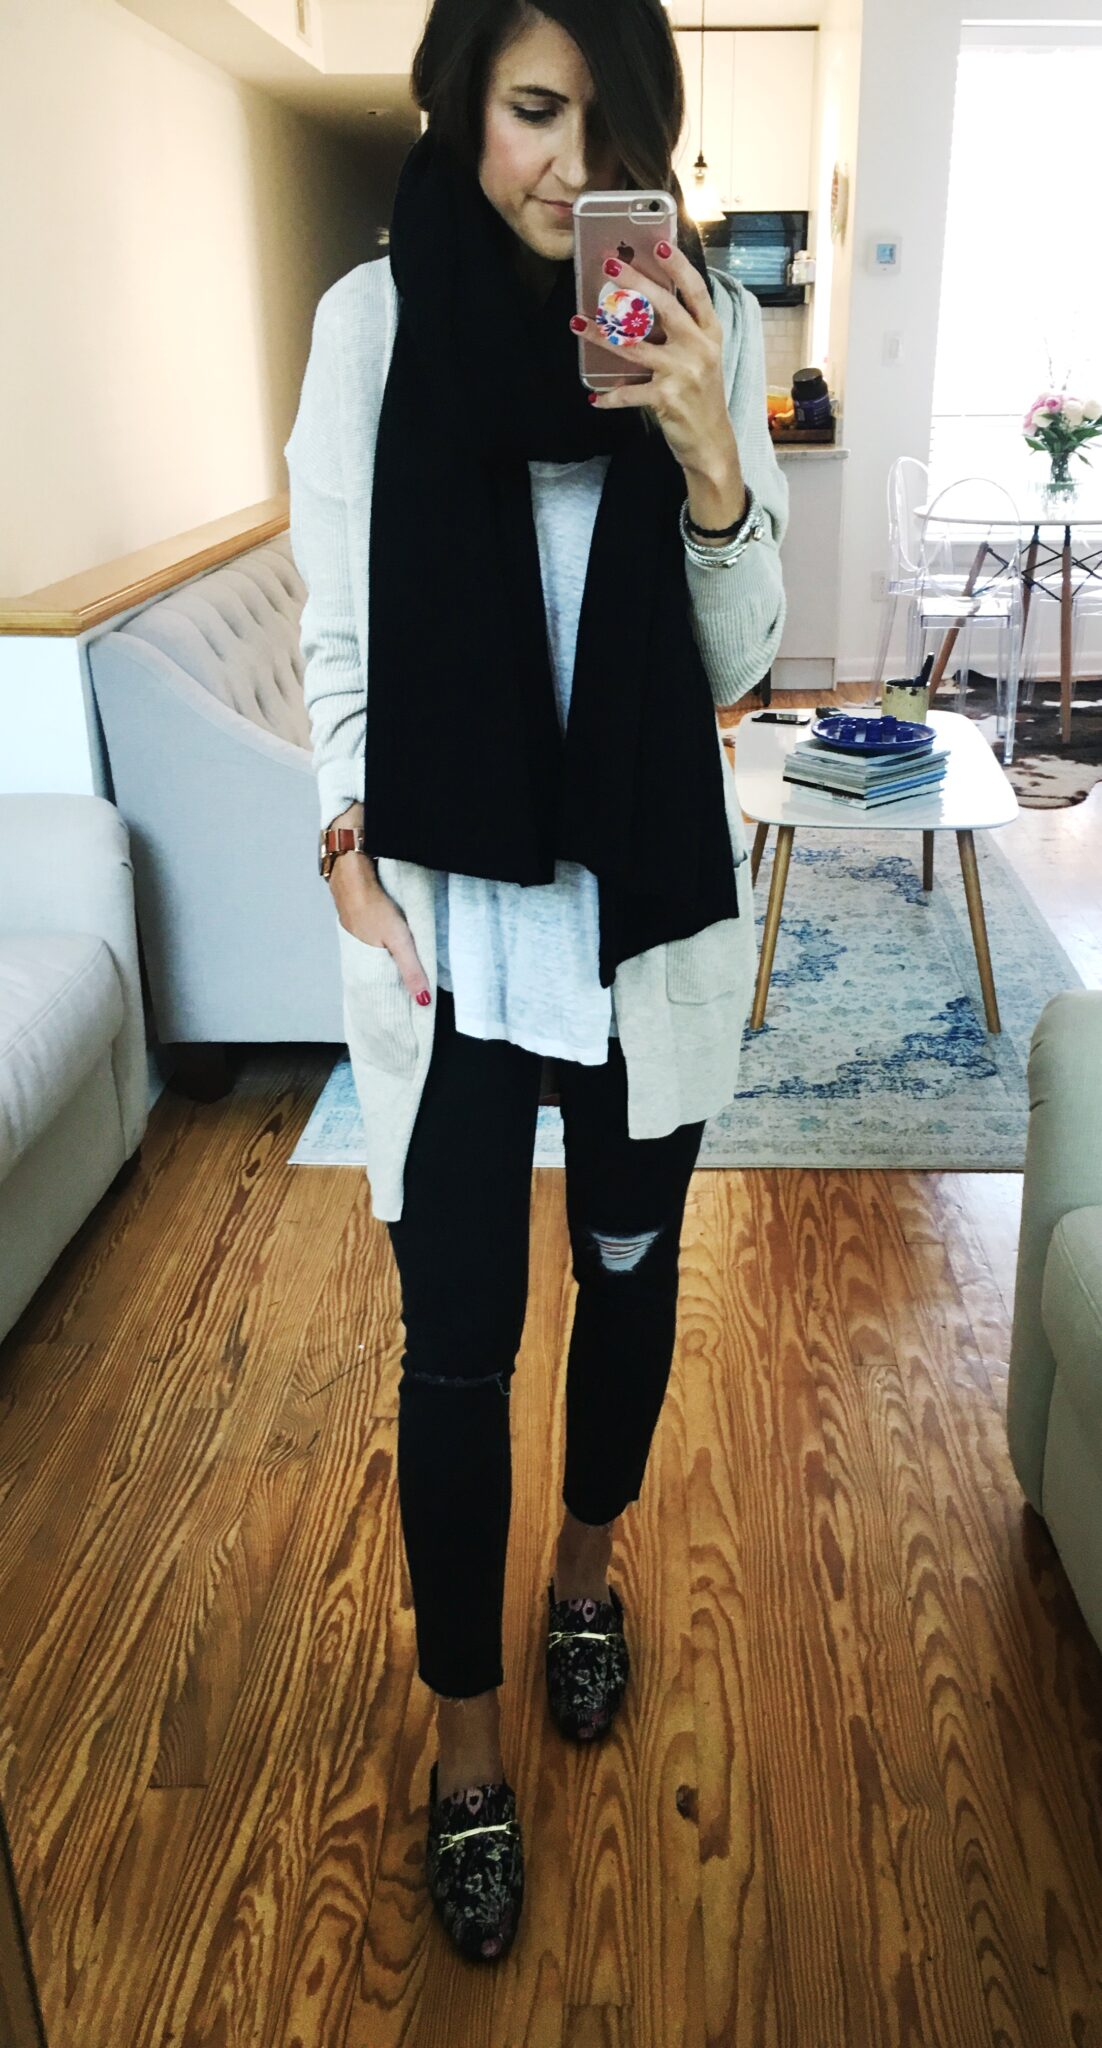 Cashmere Scarf Under $100 - Nordstrom Anniversary Sale Try On Session by popular Washington DC style blogger Cobalt Chronicles